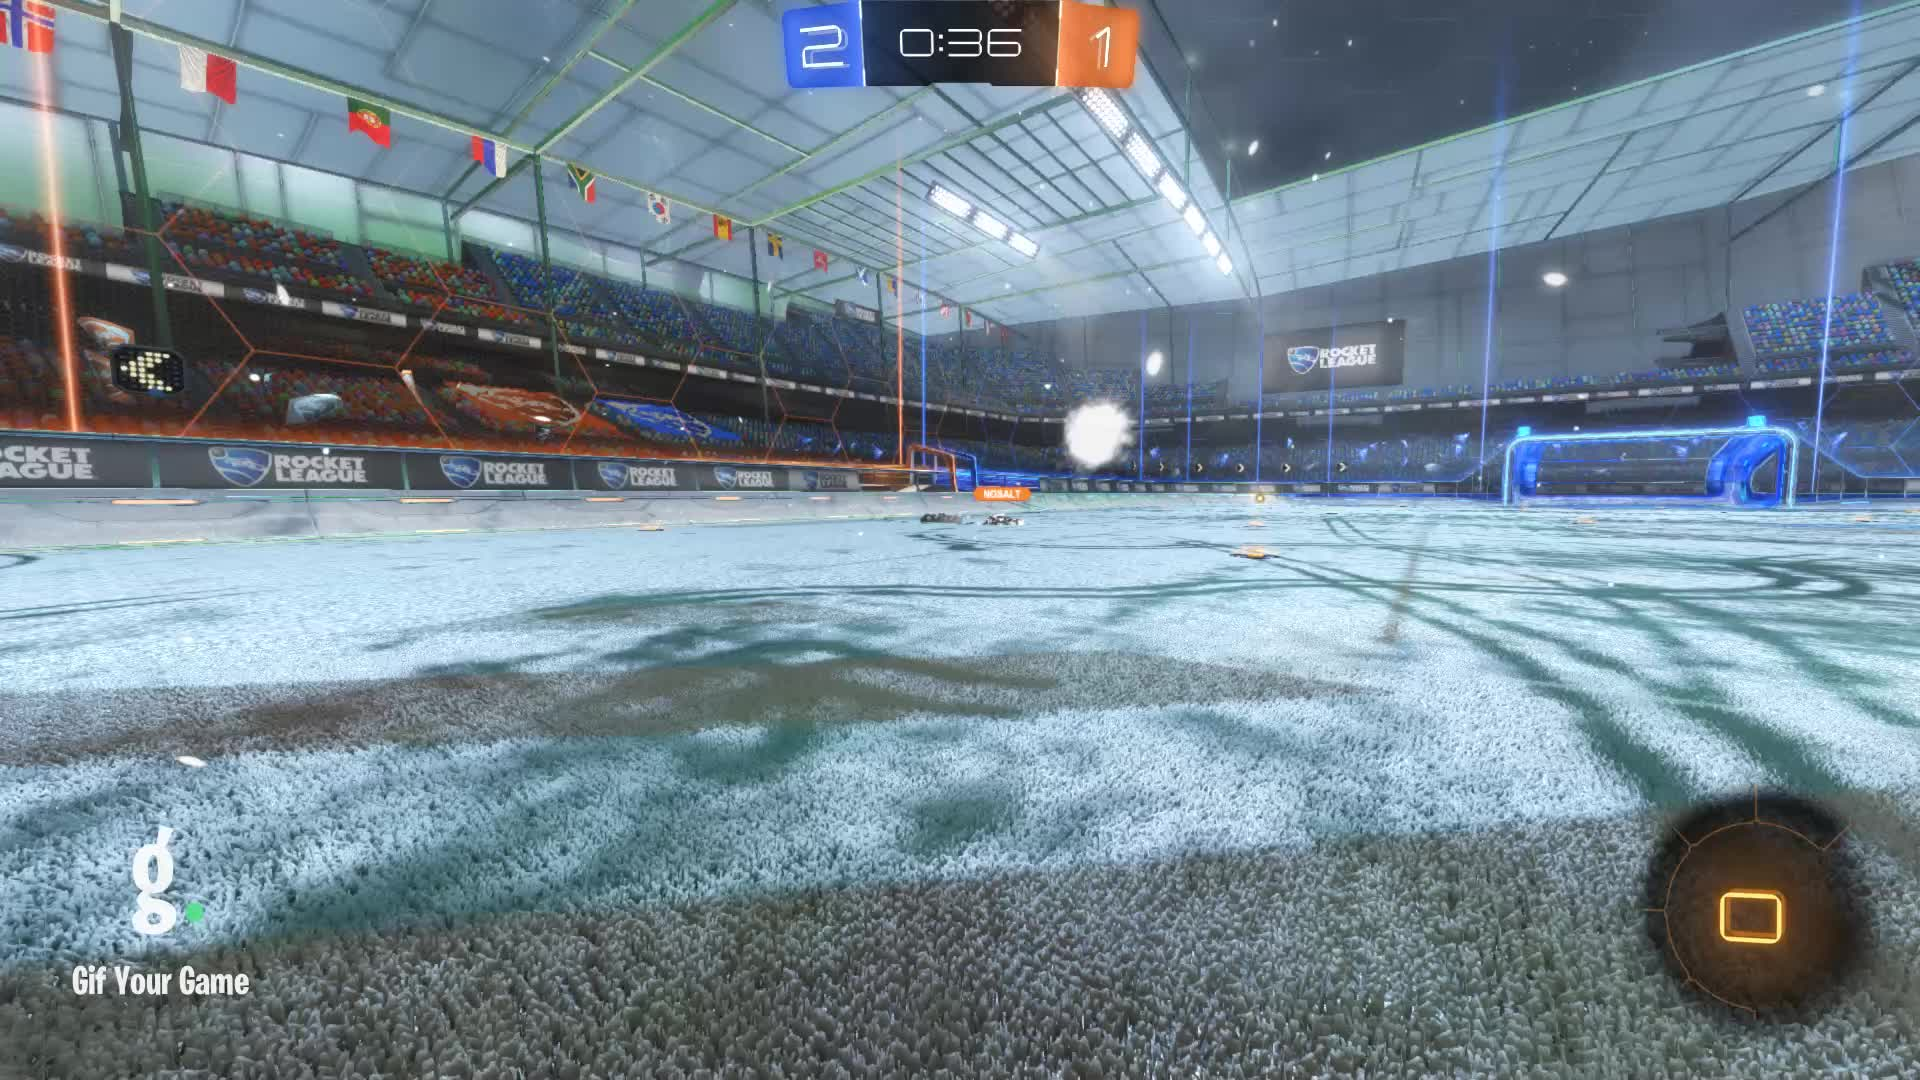 Duck Dodgers, Gif Your Game, GifYourGame, Goal, Rocket League, RocketLeague, Goal 4: Duck Dodgers GIFs